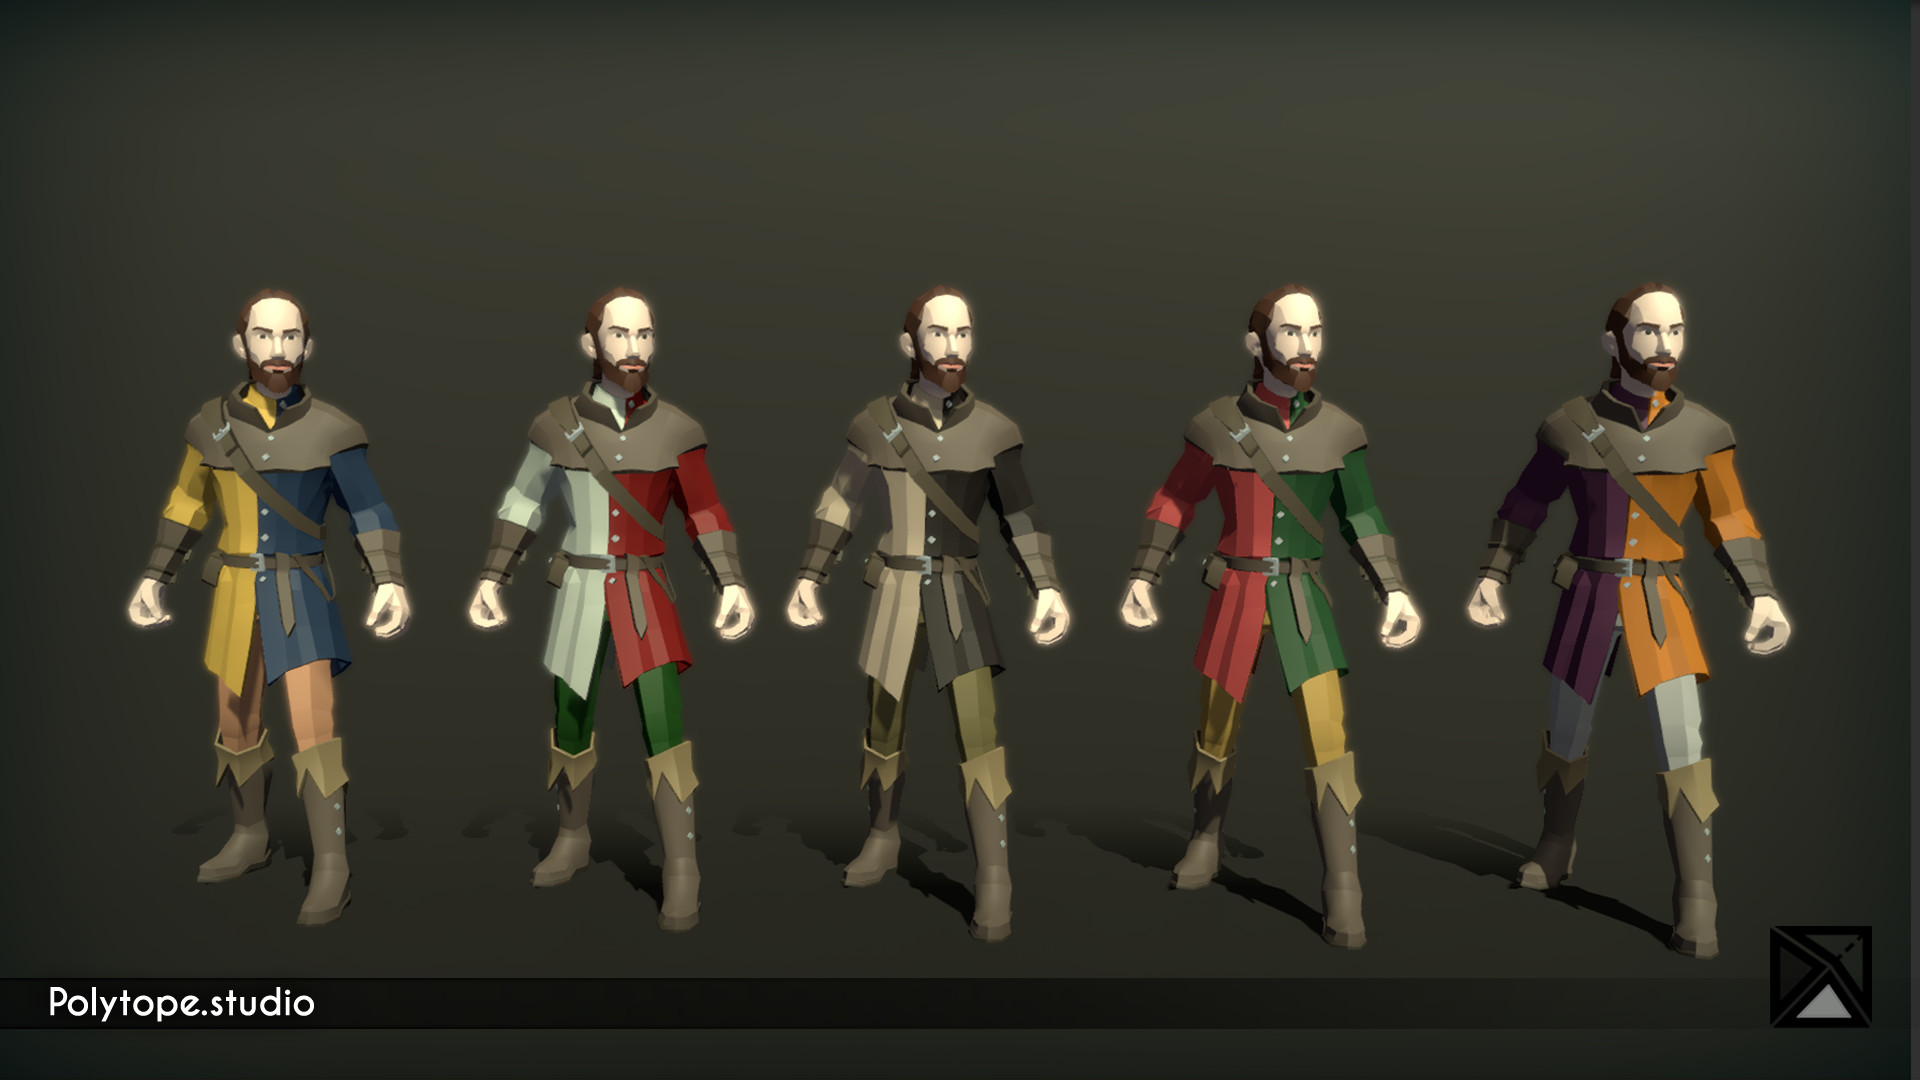 Polytope studio pt medieval lowpoly weapons soldier